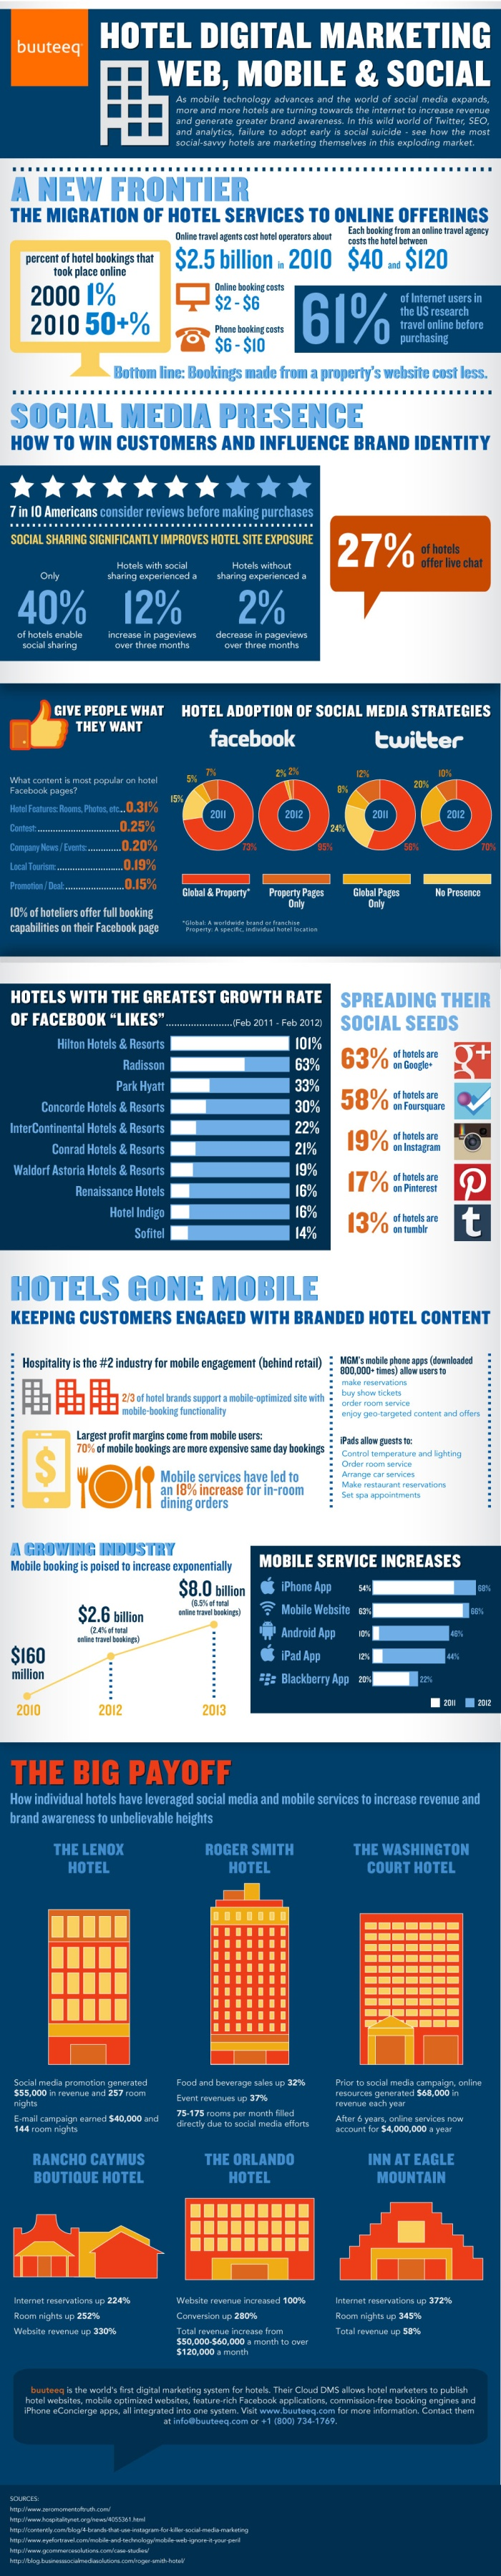 Hotel Marketing and technology: It is cheaper to gain an online booking from your website than from both online travel agencies (OTAs) and phone bookings.  Hotels that engage with social media increase bookings, while those that ignore it lose bookings.  The largest margin of profit comes from mobile bookers.  Social media campaigns encourage more bookings than traditional email campaigns.